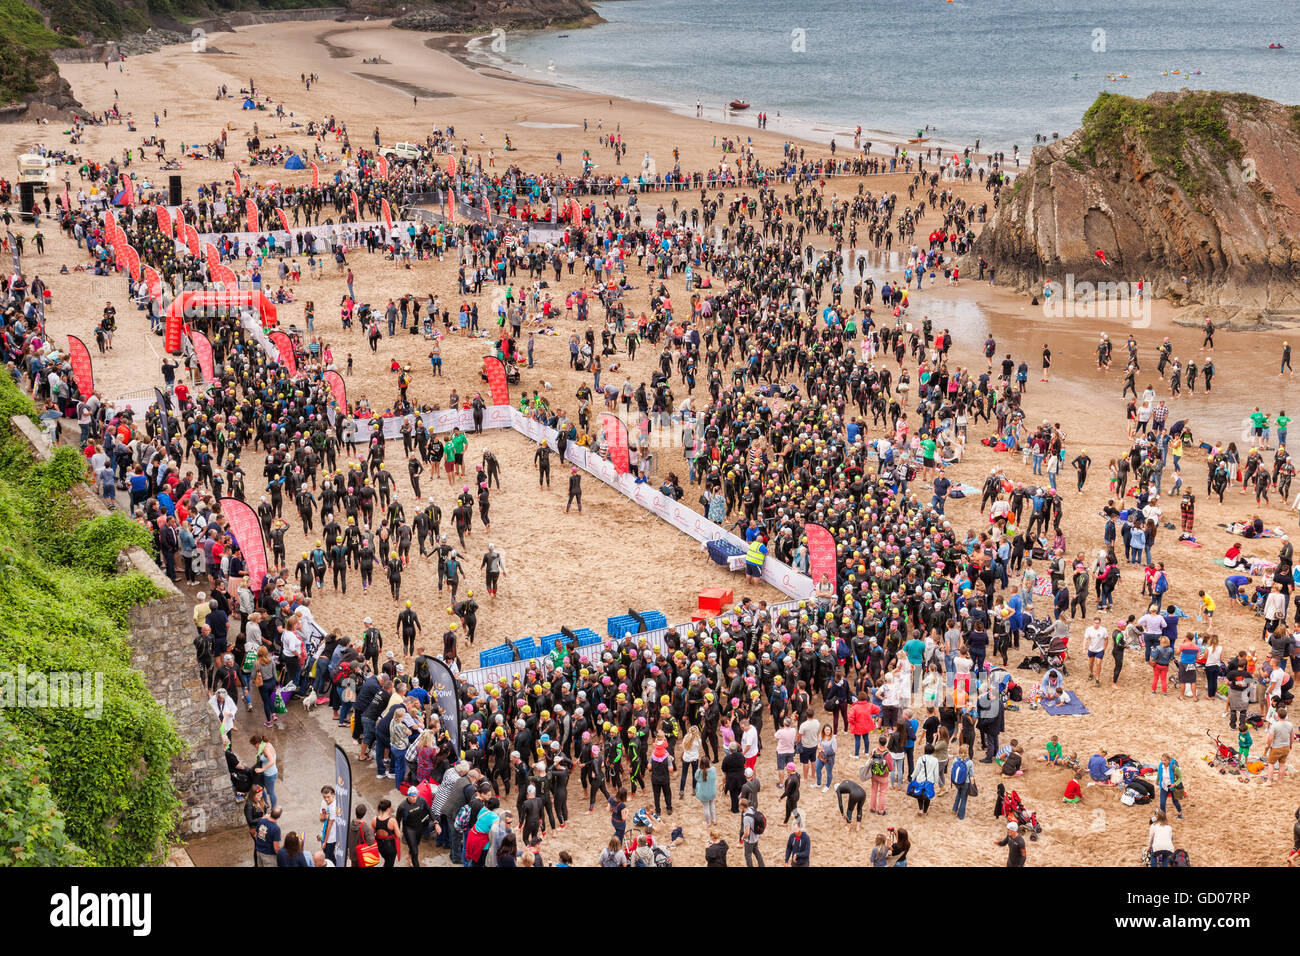 2100 swimmers gather for the first event of the Wales Long Course Weekend at Tenby, Pembrokeshire, Wales, UK - Stock Image